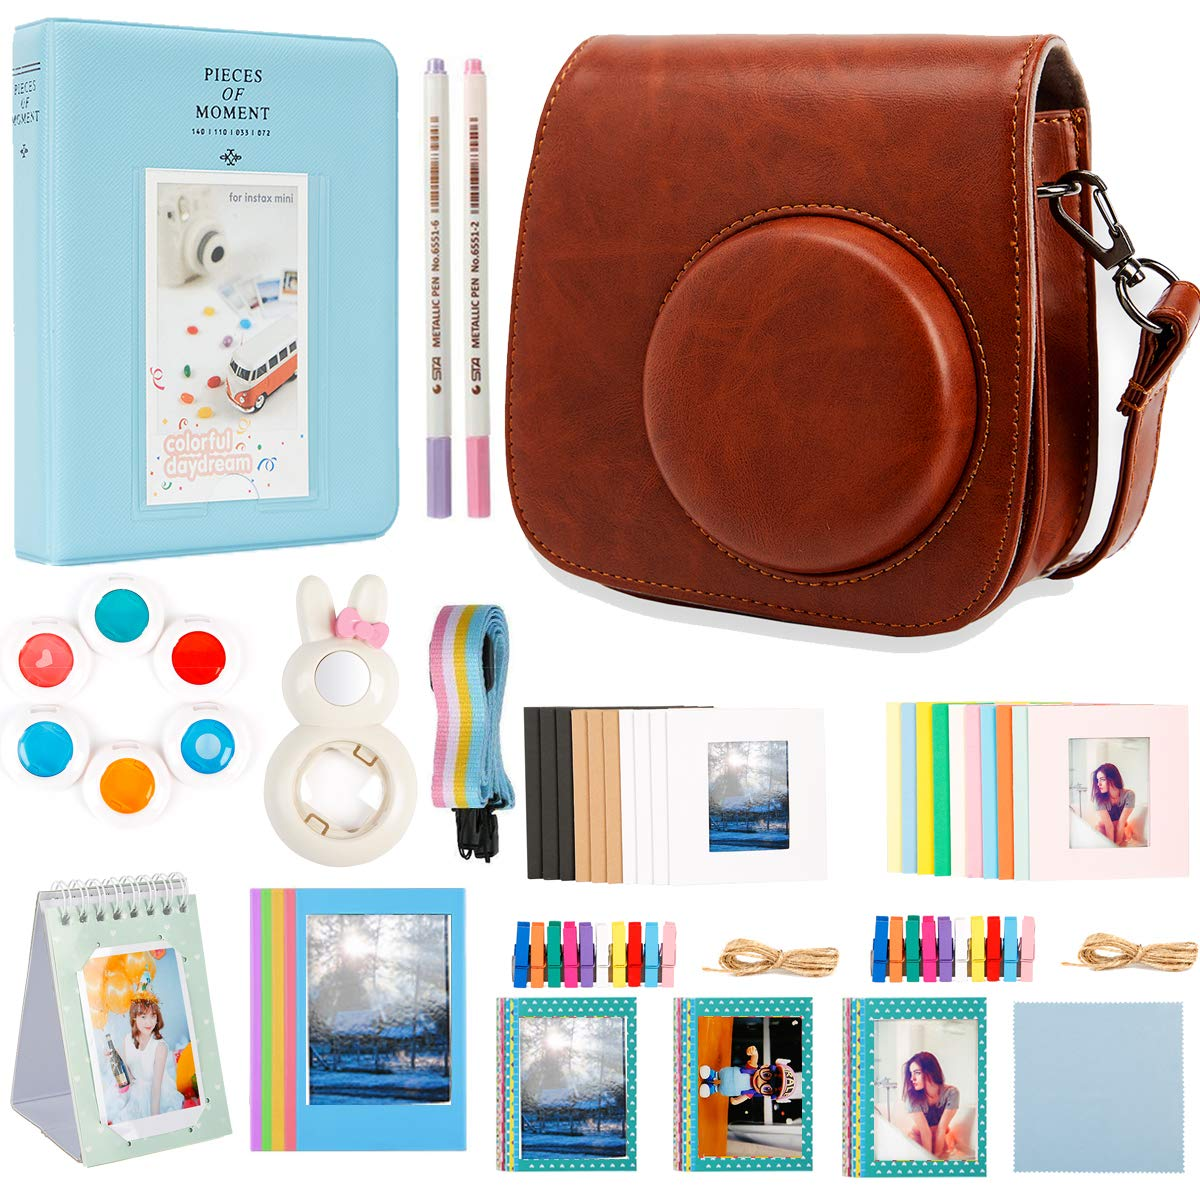 Alohallo Instax Mini 9 Mini 8 Mini 8 + Accessories for FujiFilm Instax Mini 8/8+/ 9 Instant Film Camera with Camera Case/Lens/Mini Album/Color Frame/Sticker/Strap/Pens/Filter(Universe)